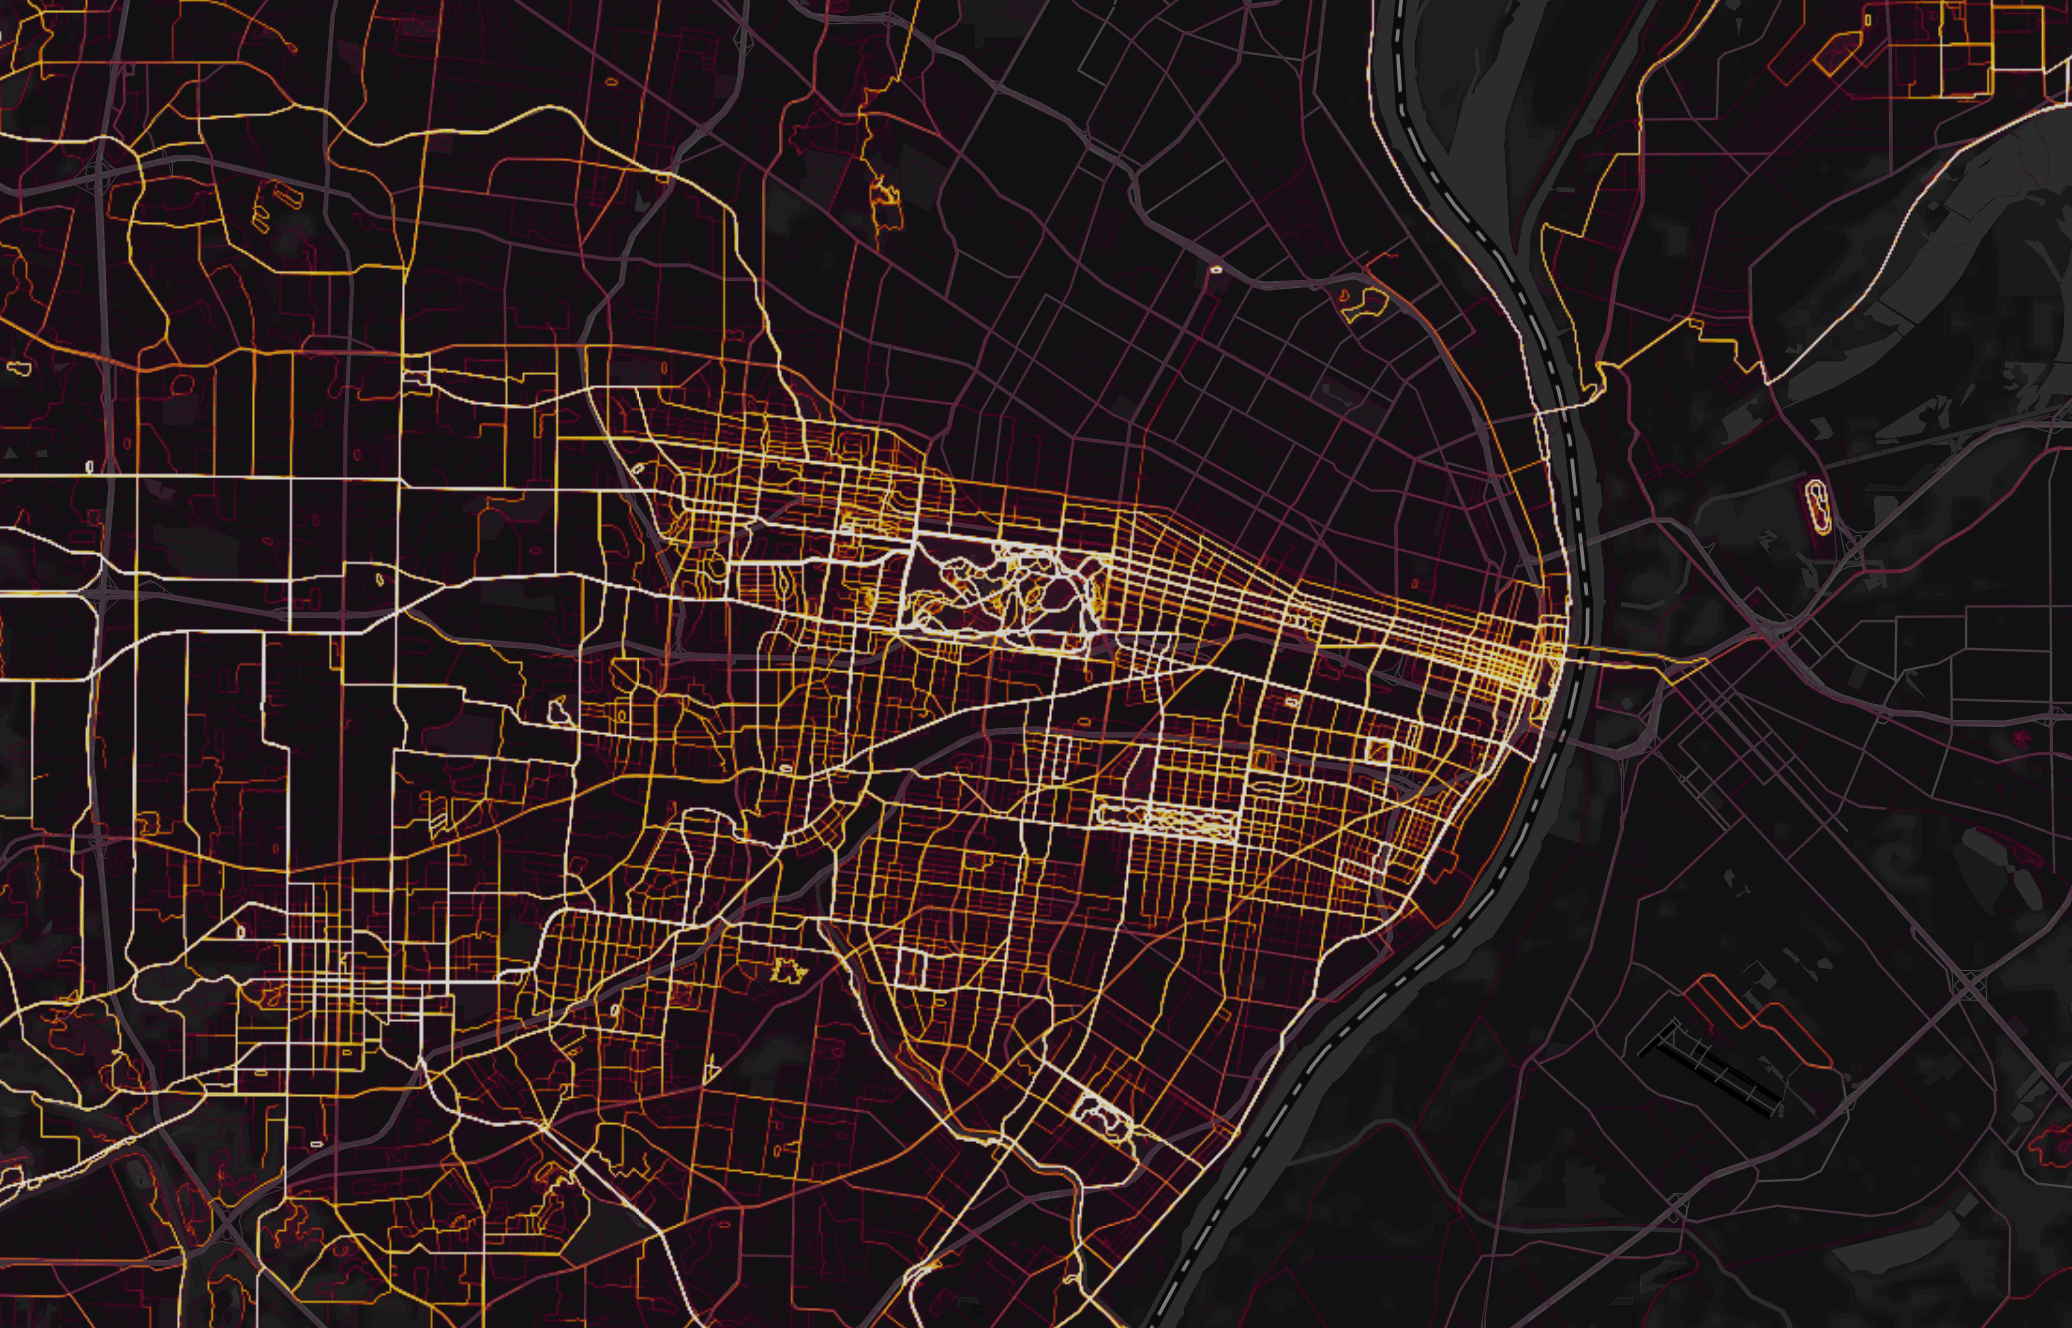 The Strava heat map of St. Louis.